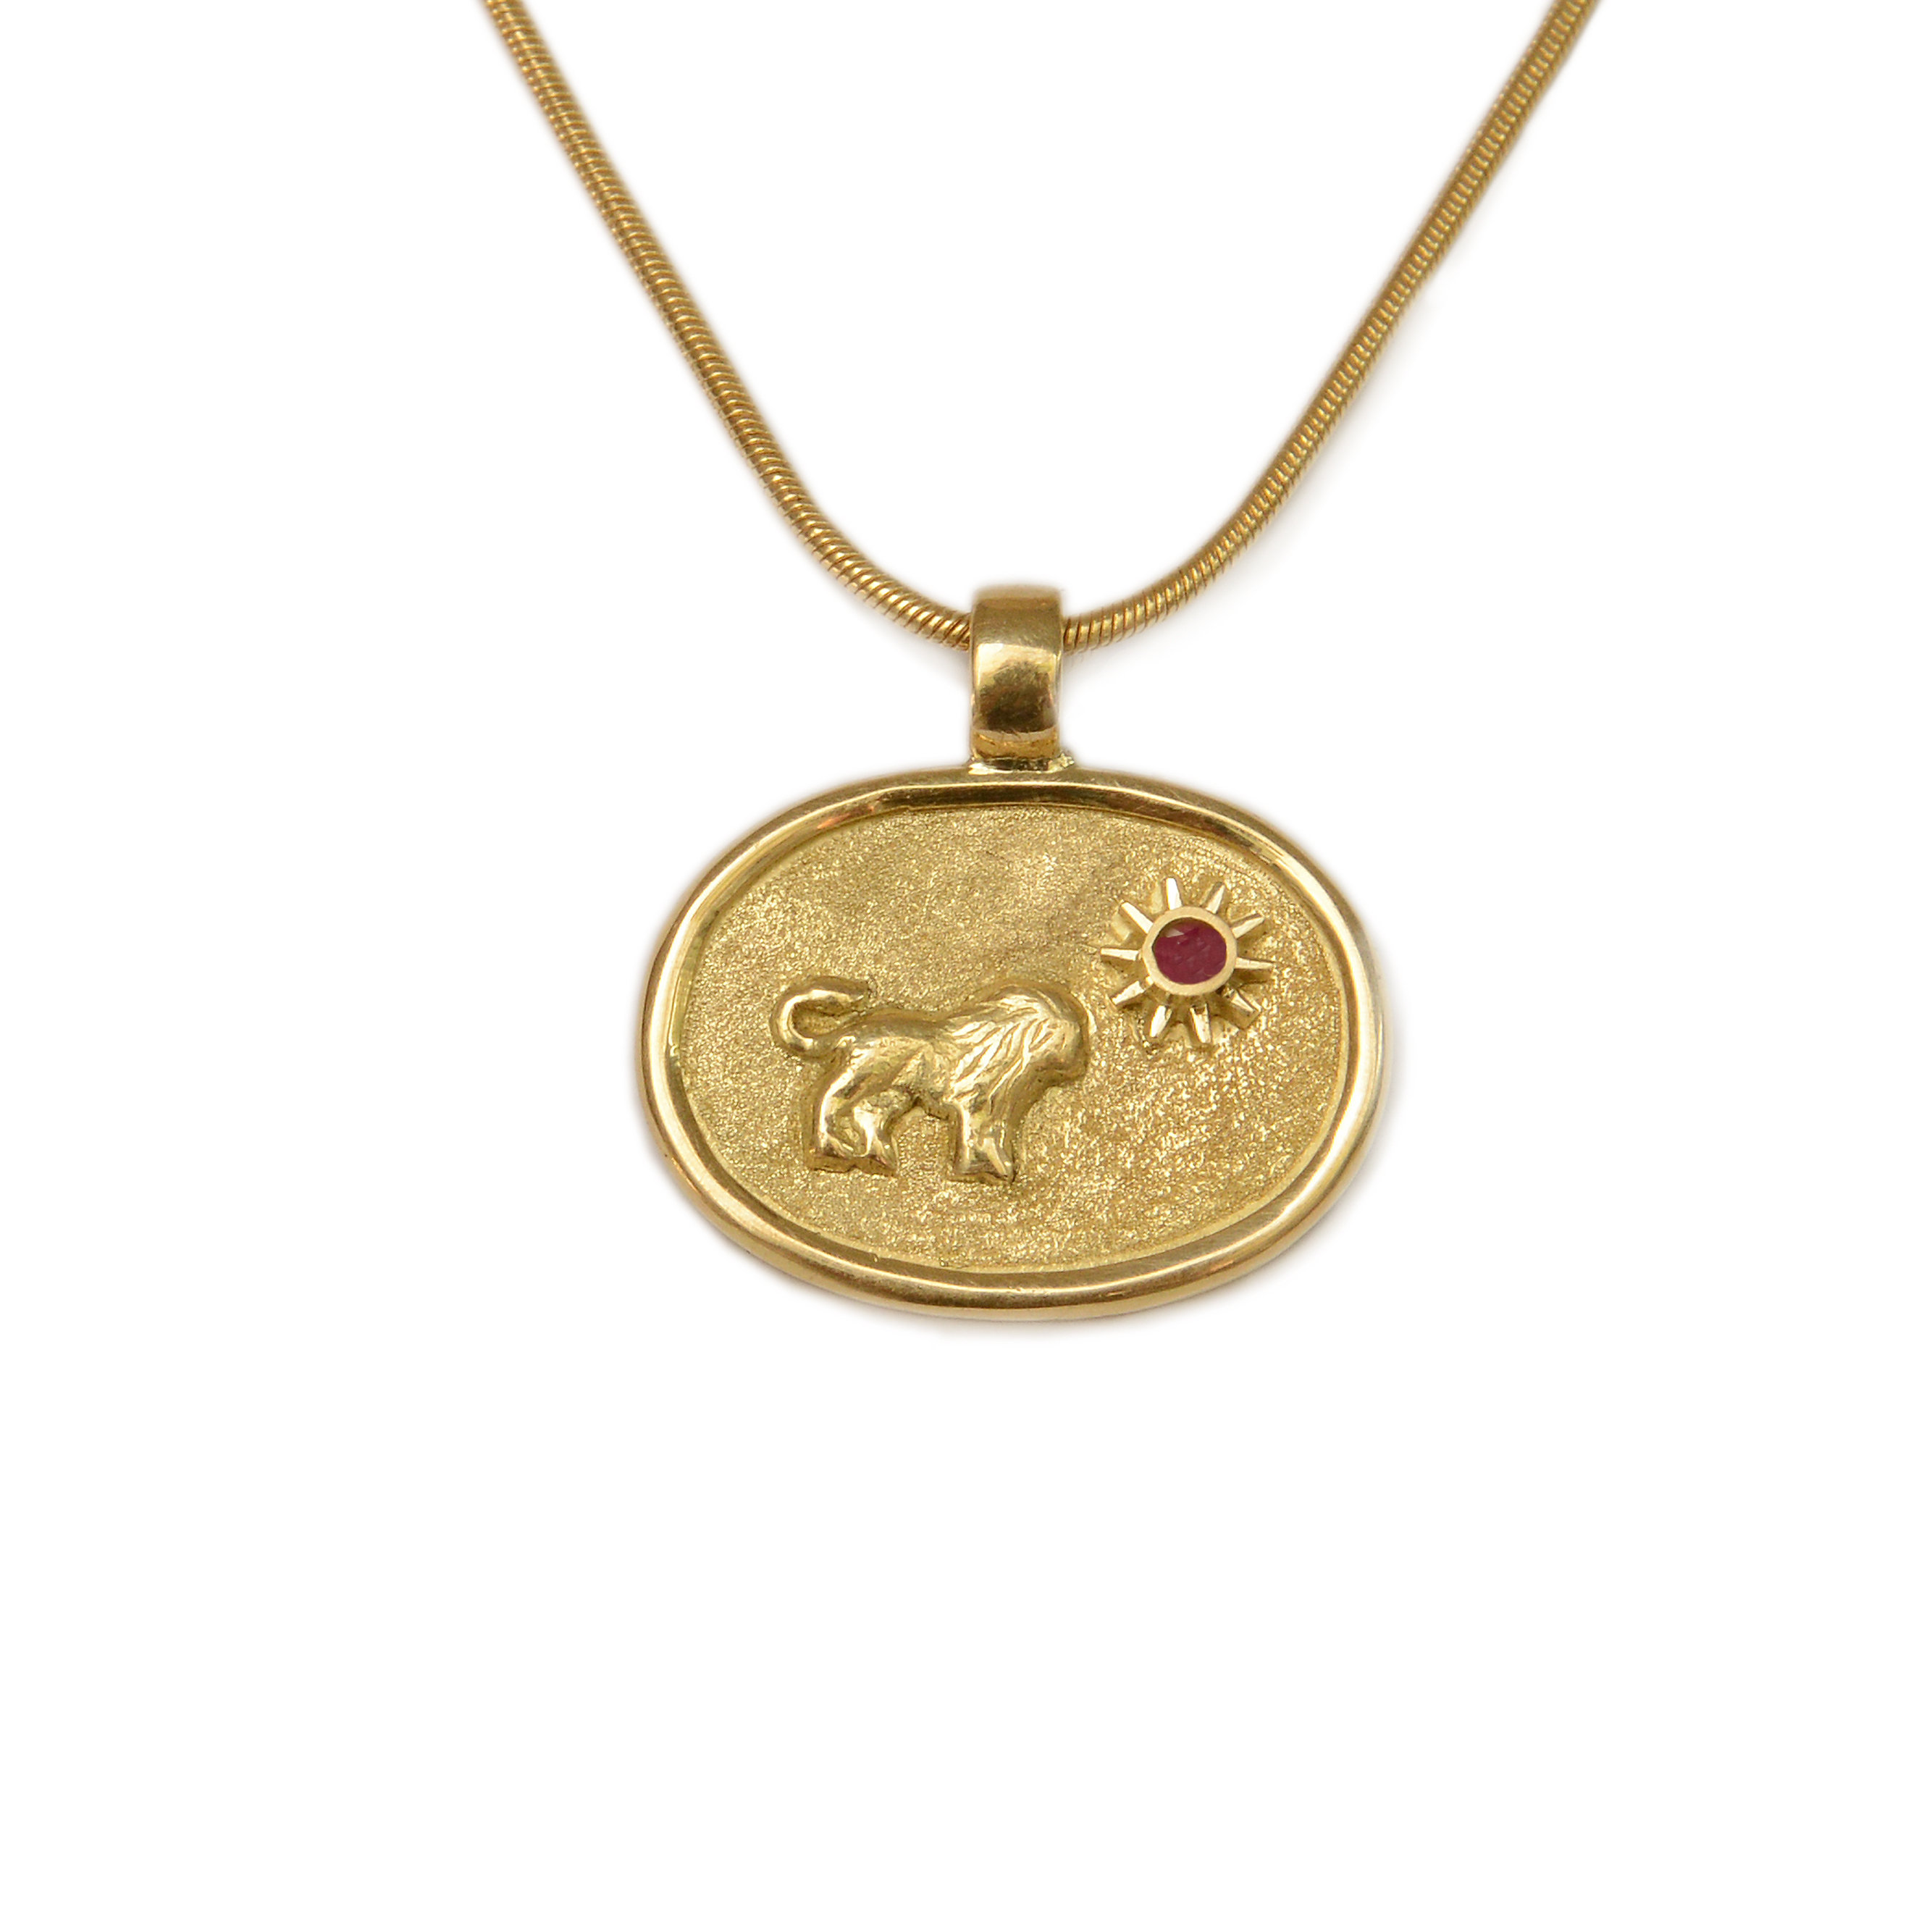 nemean yellow gold lion necklace pendant id org at jewelry necklaces sale back for j karat